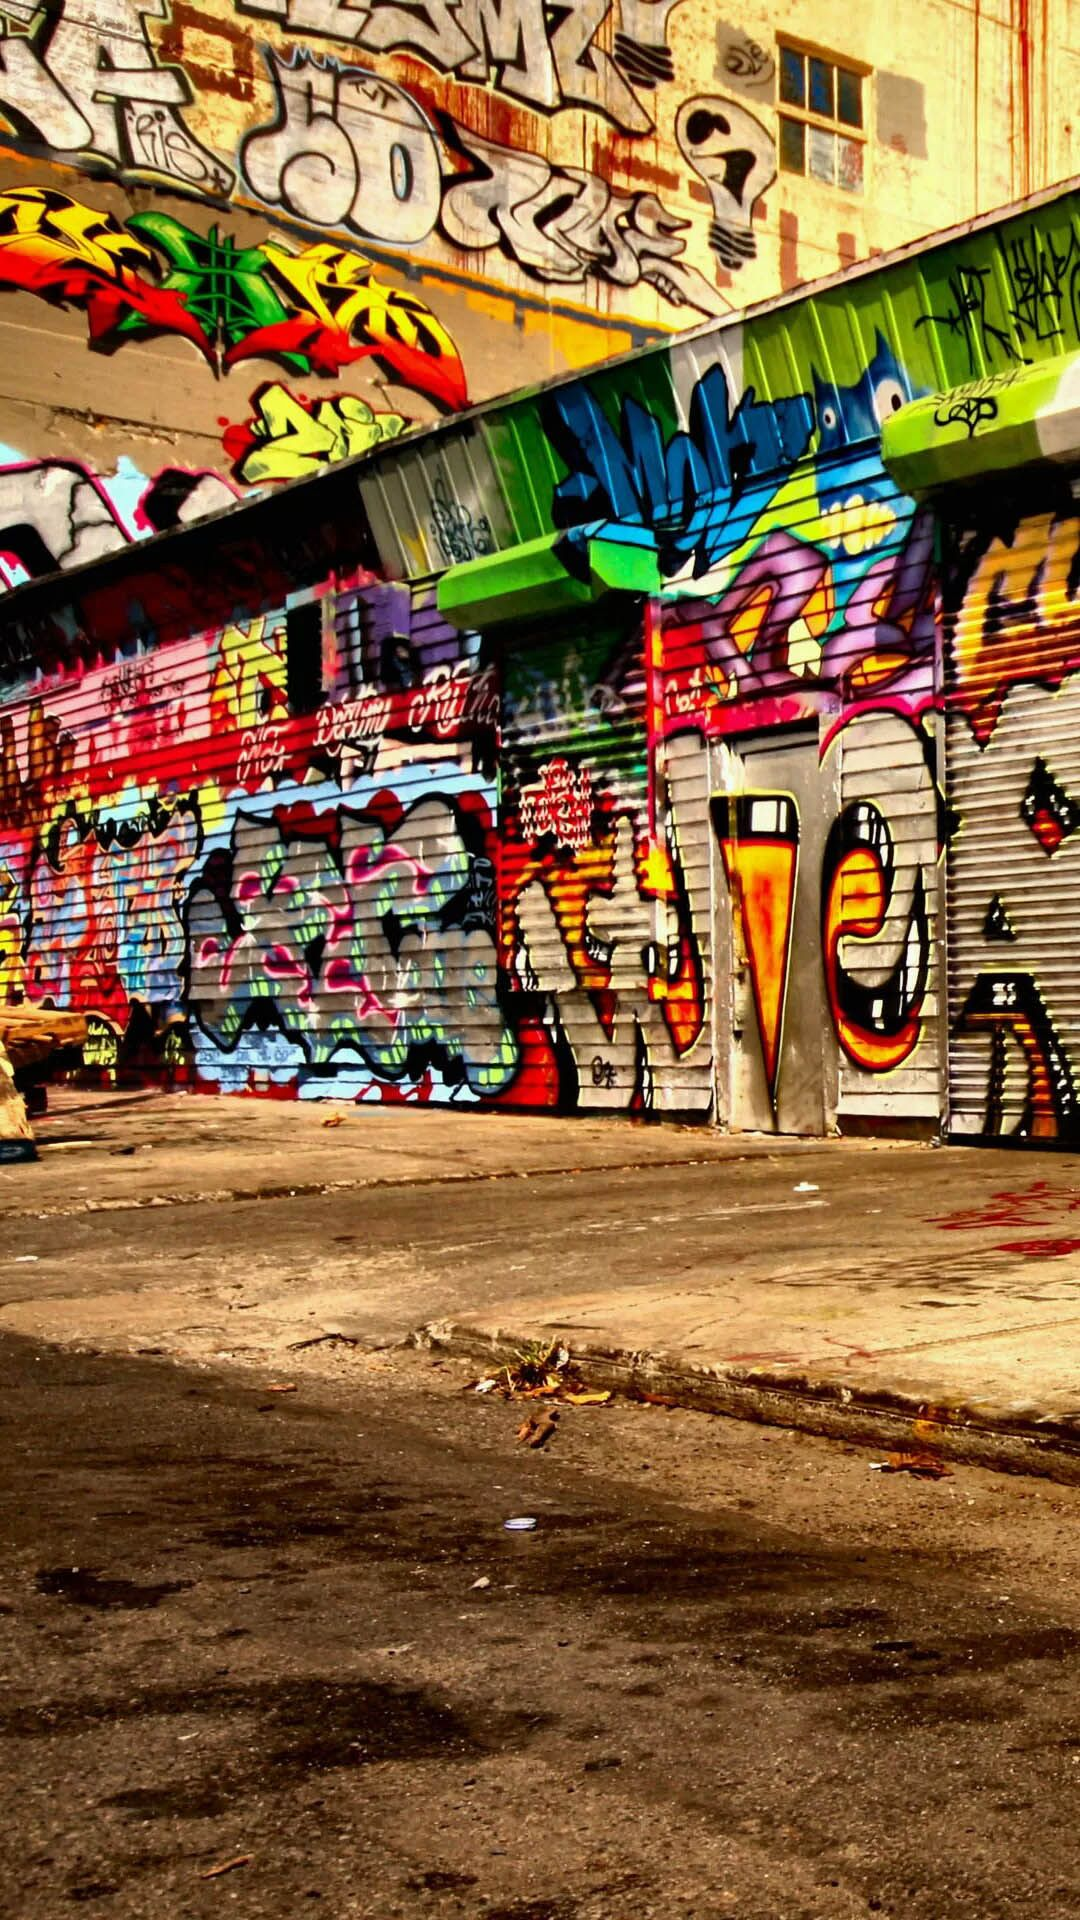 1080x1920 Colorful Graffiti City Alley Street Art Android Wallpaper free download